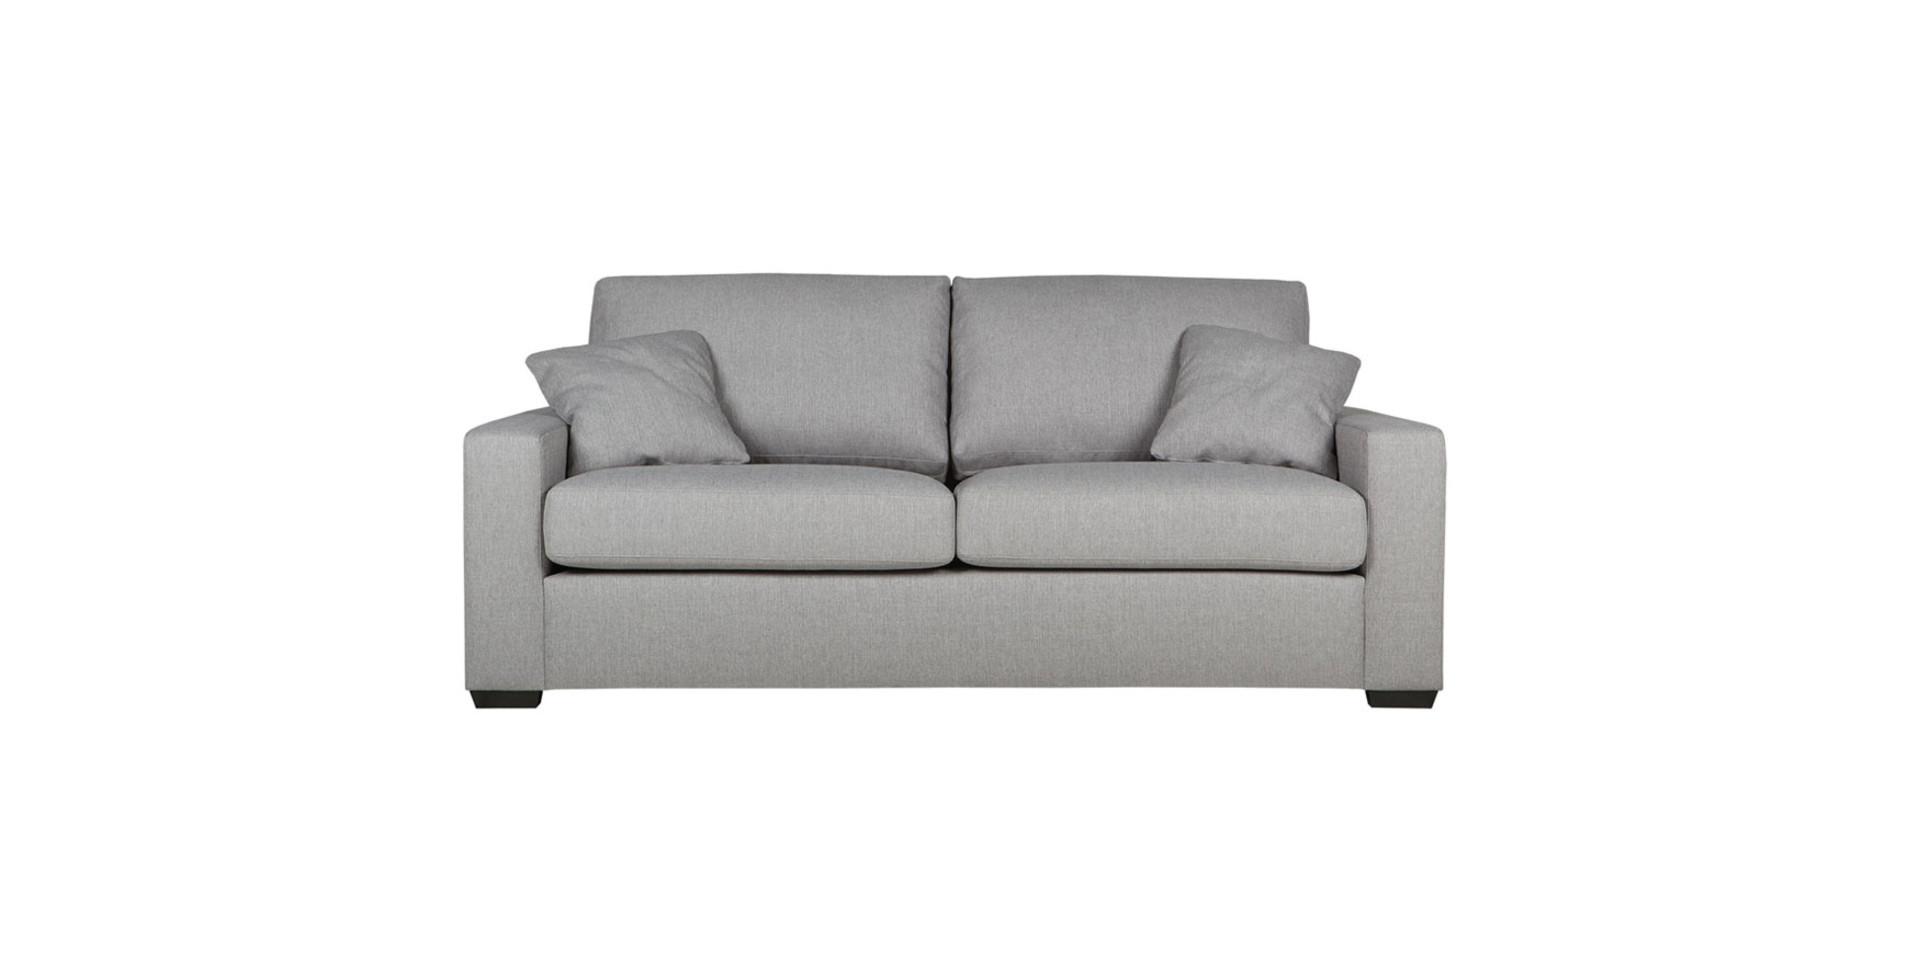 sits-boston-canape-3seater_cedros8_light_grey_1